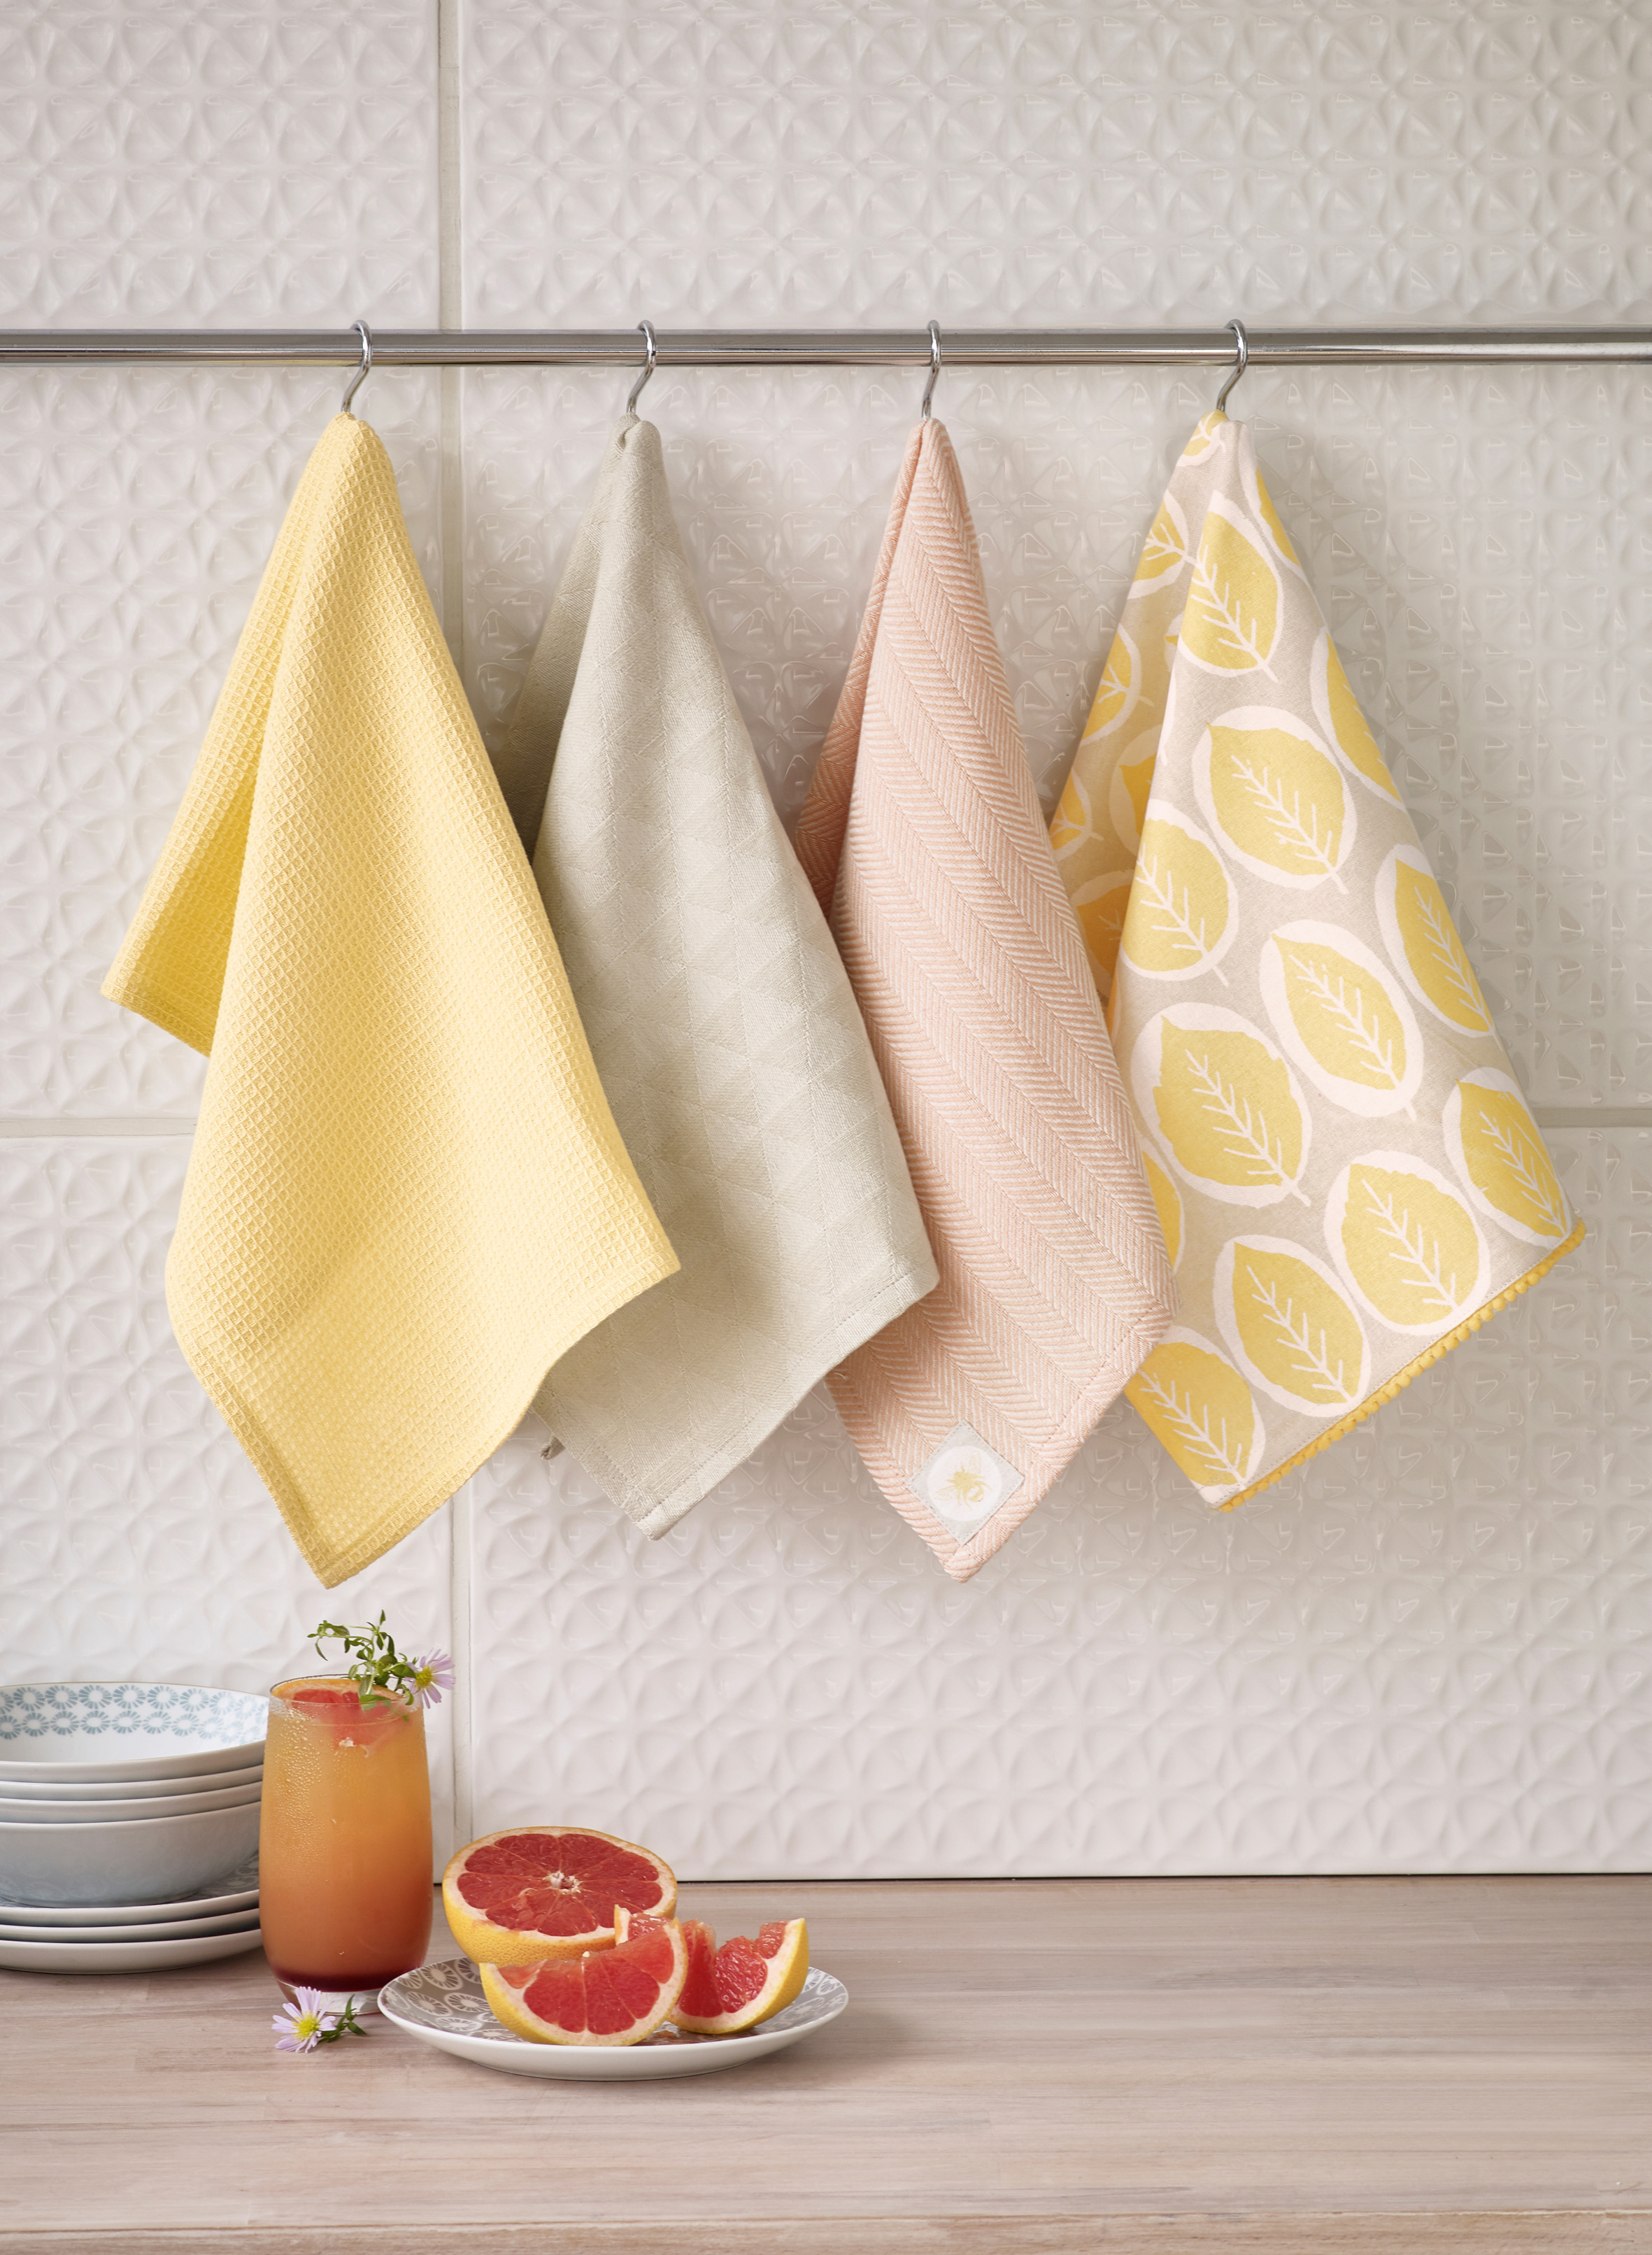 Pastel patterned tea towels, NEXT